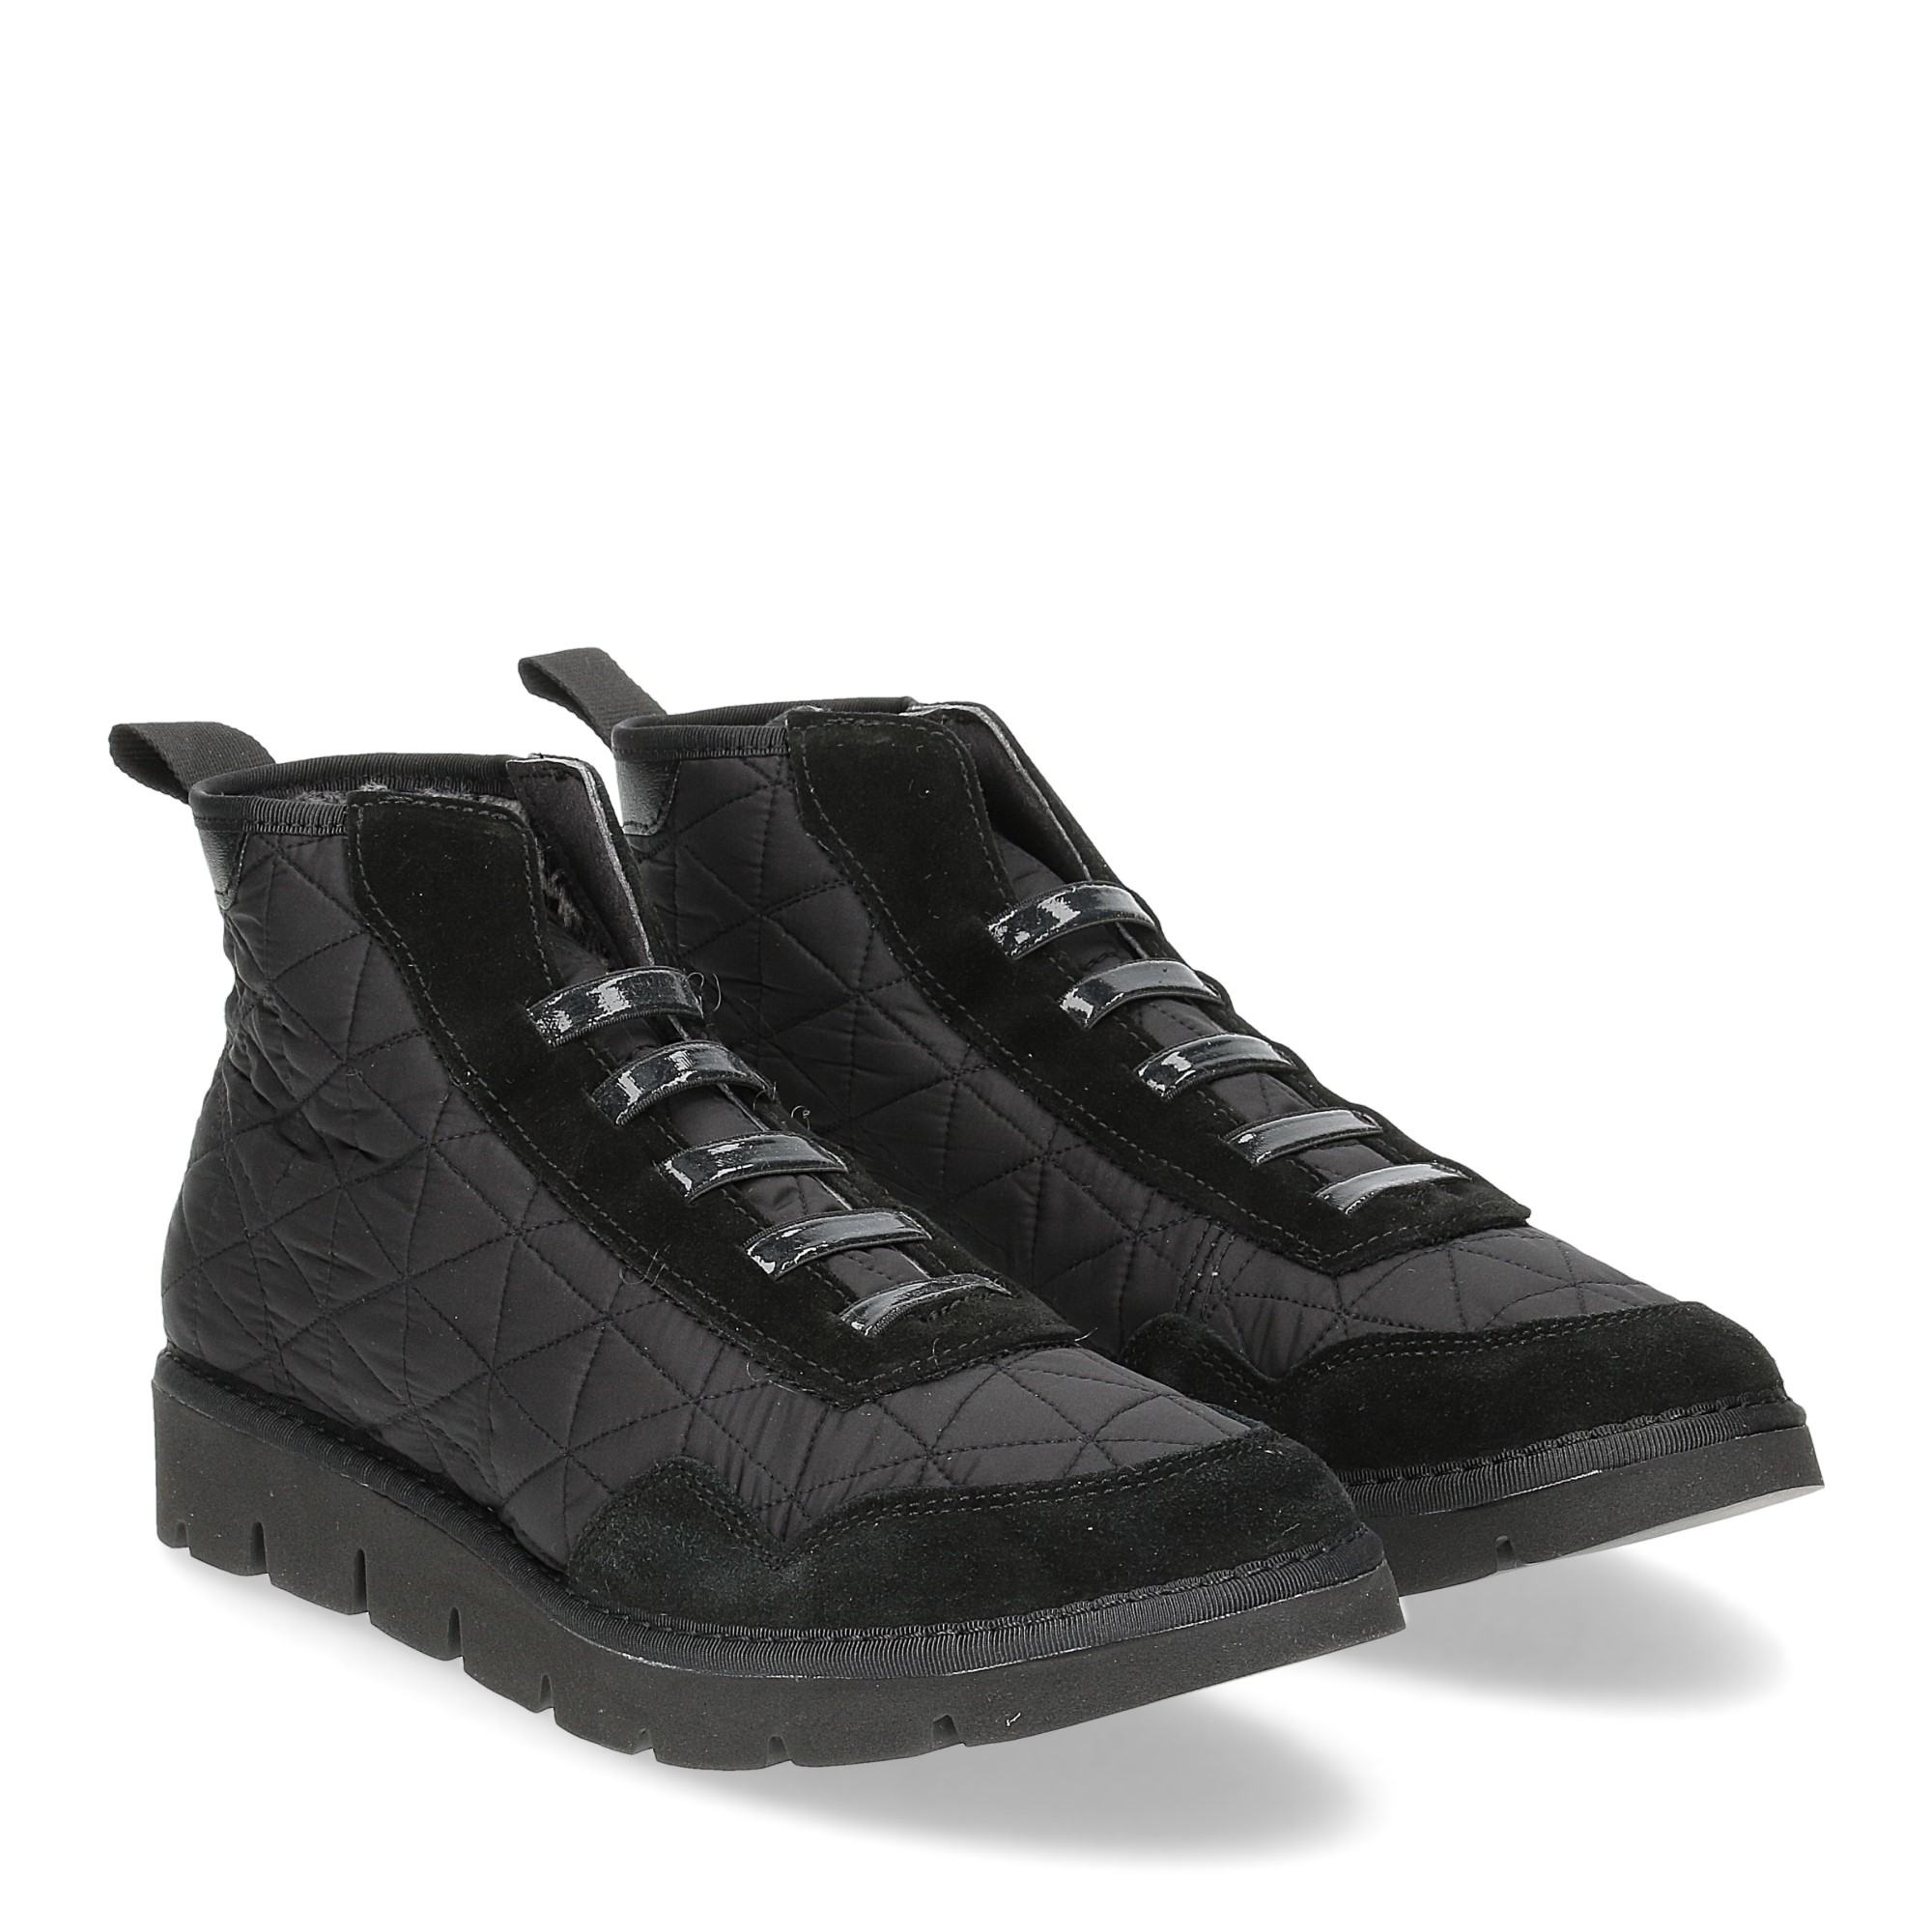 Panchic polacco sneaker P05M total black